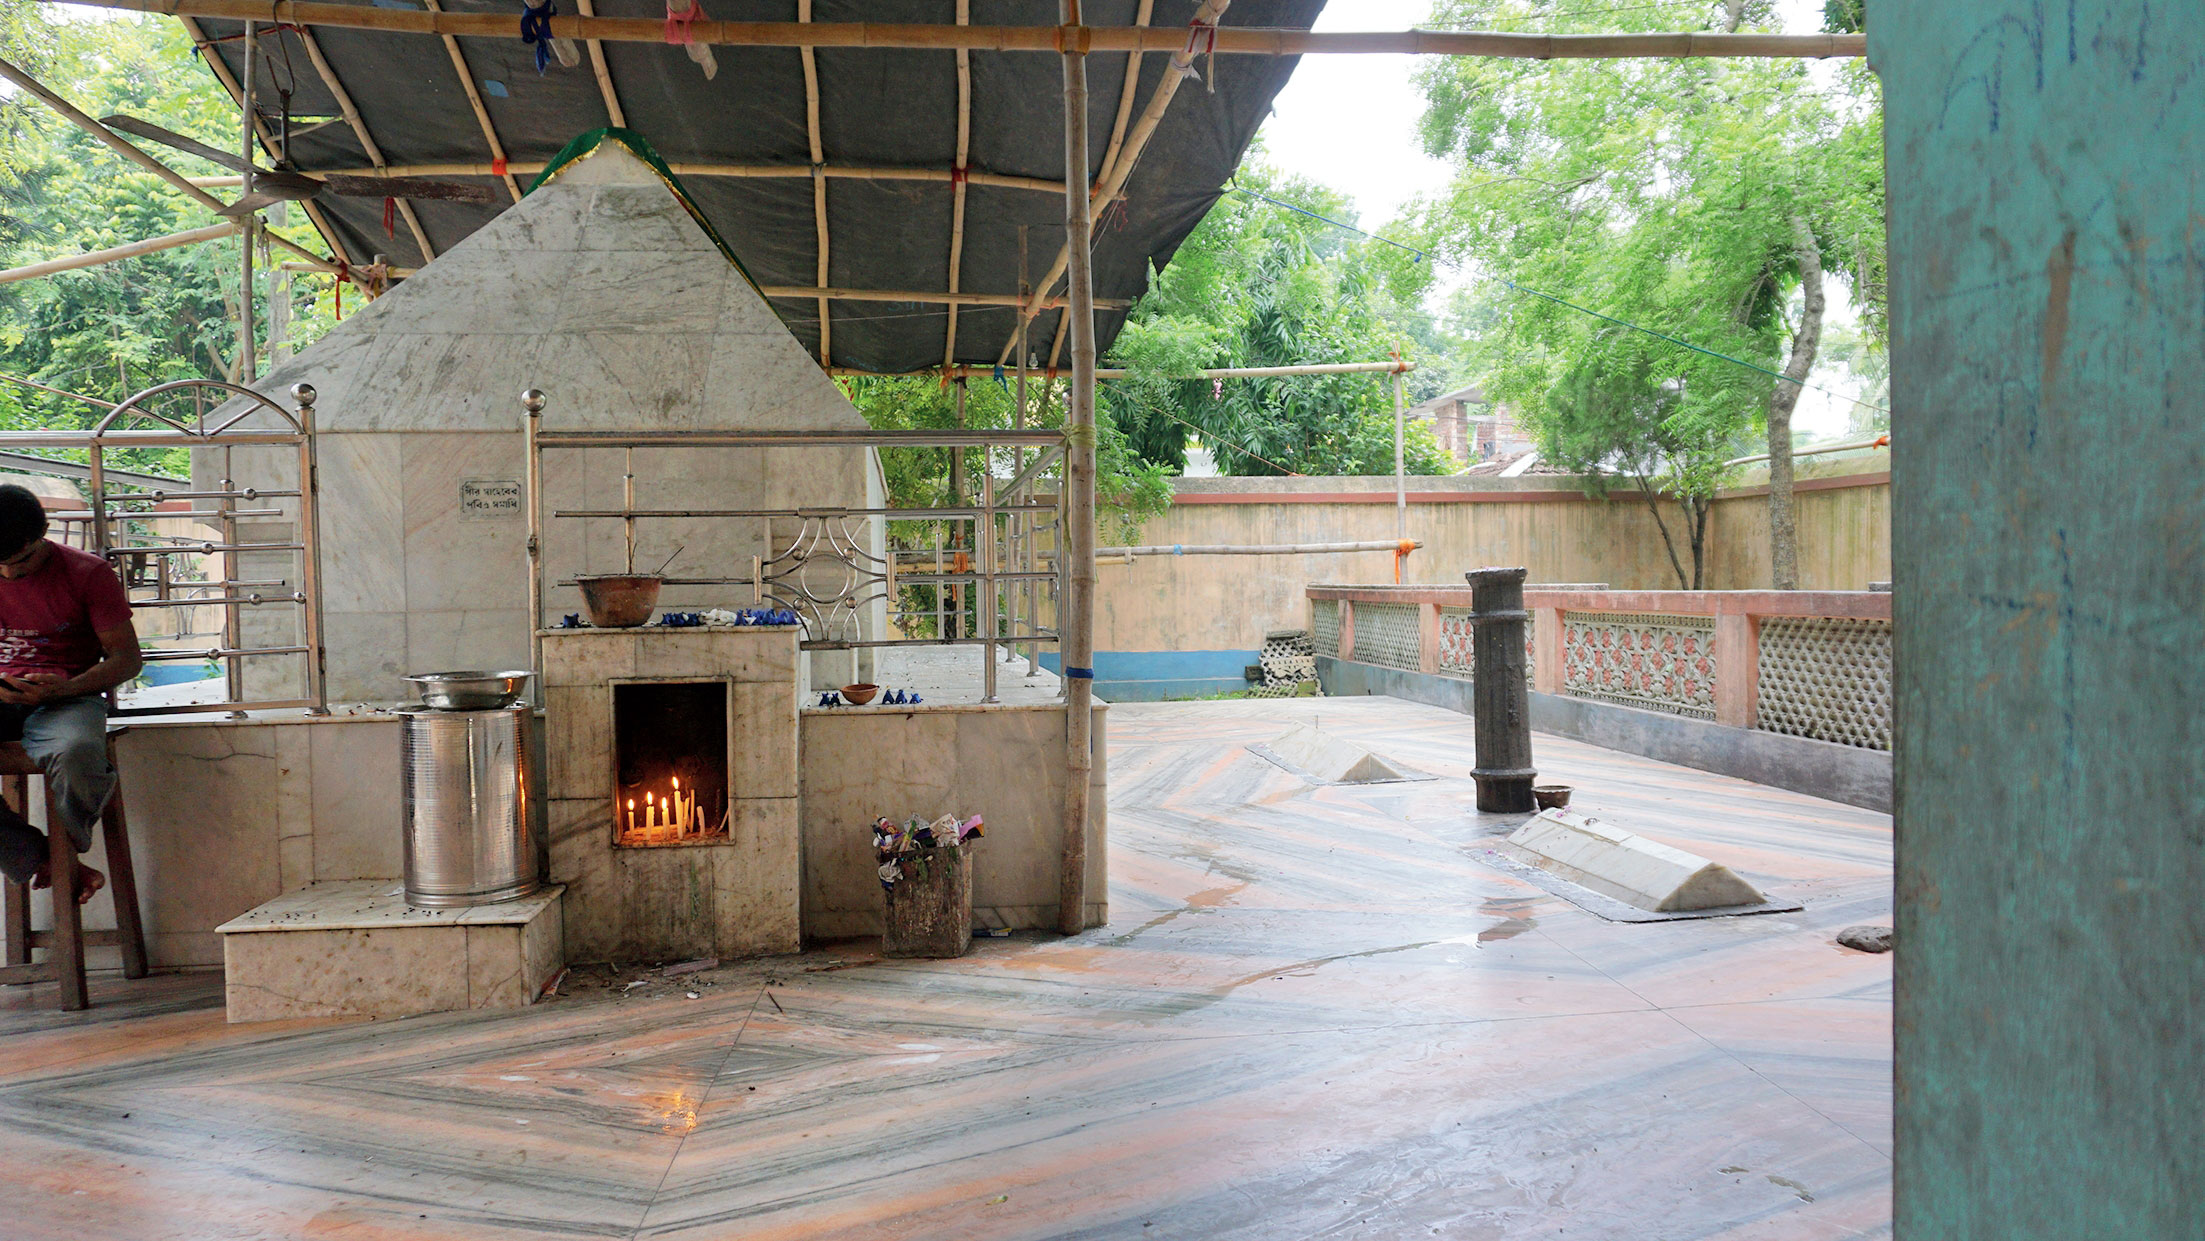 The mazaar of Pir Hazrat Shah Malek Gaus in Matiari